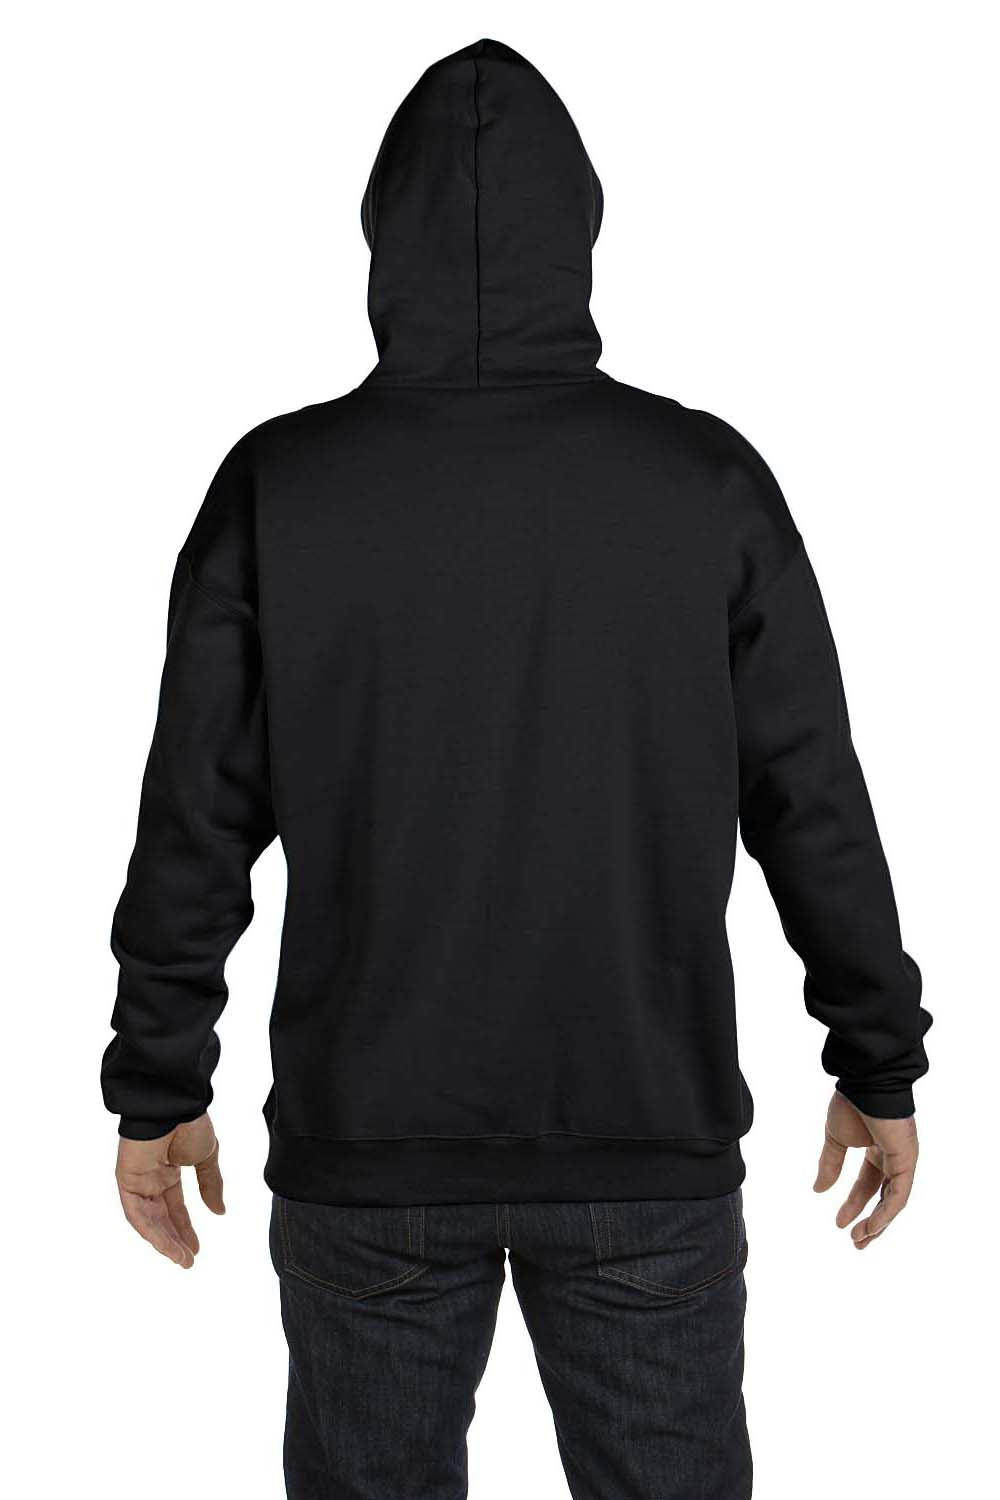 Hanes F170 Mens Ultimate Cotton PrintPro XP Hooded Sweatshirt Hoodie Black Back